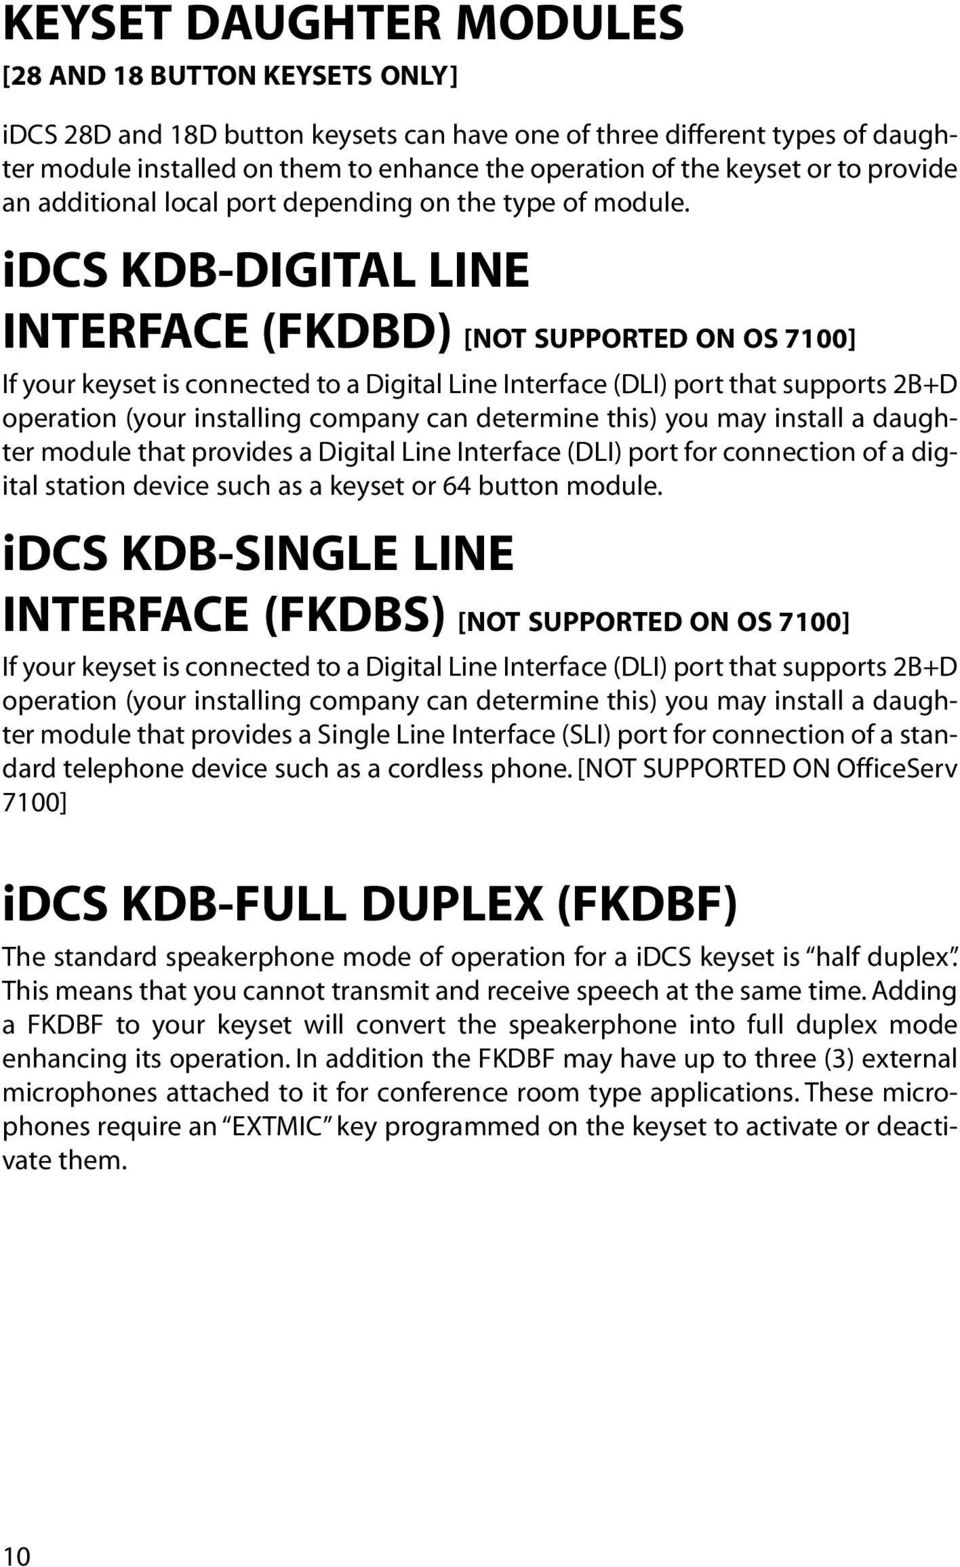 idcs KDB-DIGITAL LINE INTERFACE (FKDBD) [NOT SUPPORTED ON OS 7100] If your keyset is connected to a Digital Line Interface (DLI) port that supports 2B+D operation (your installing company can